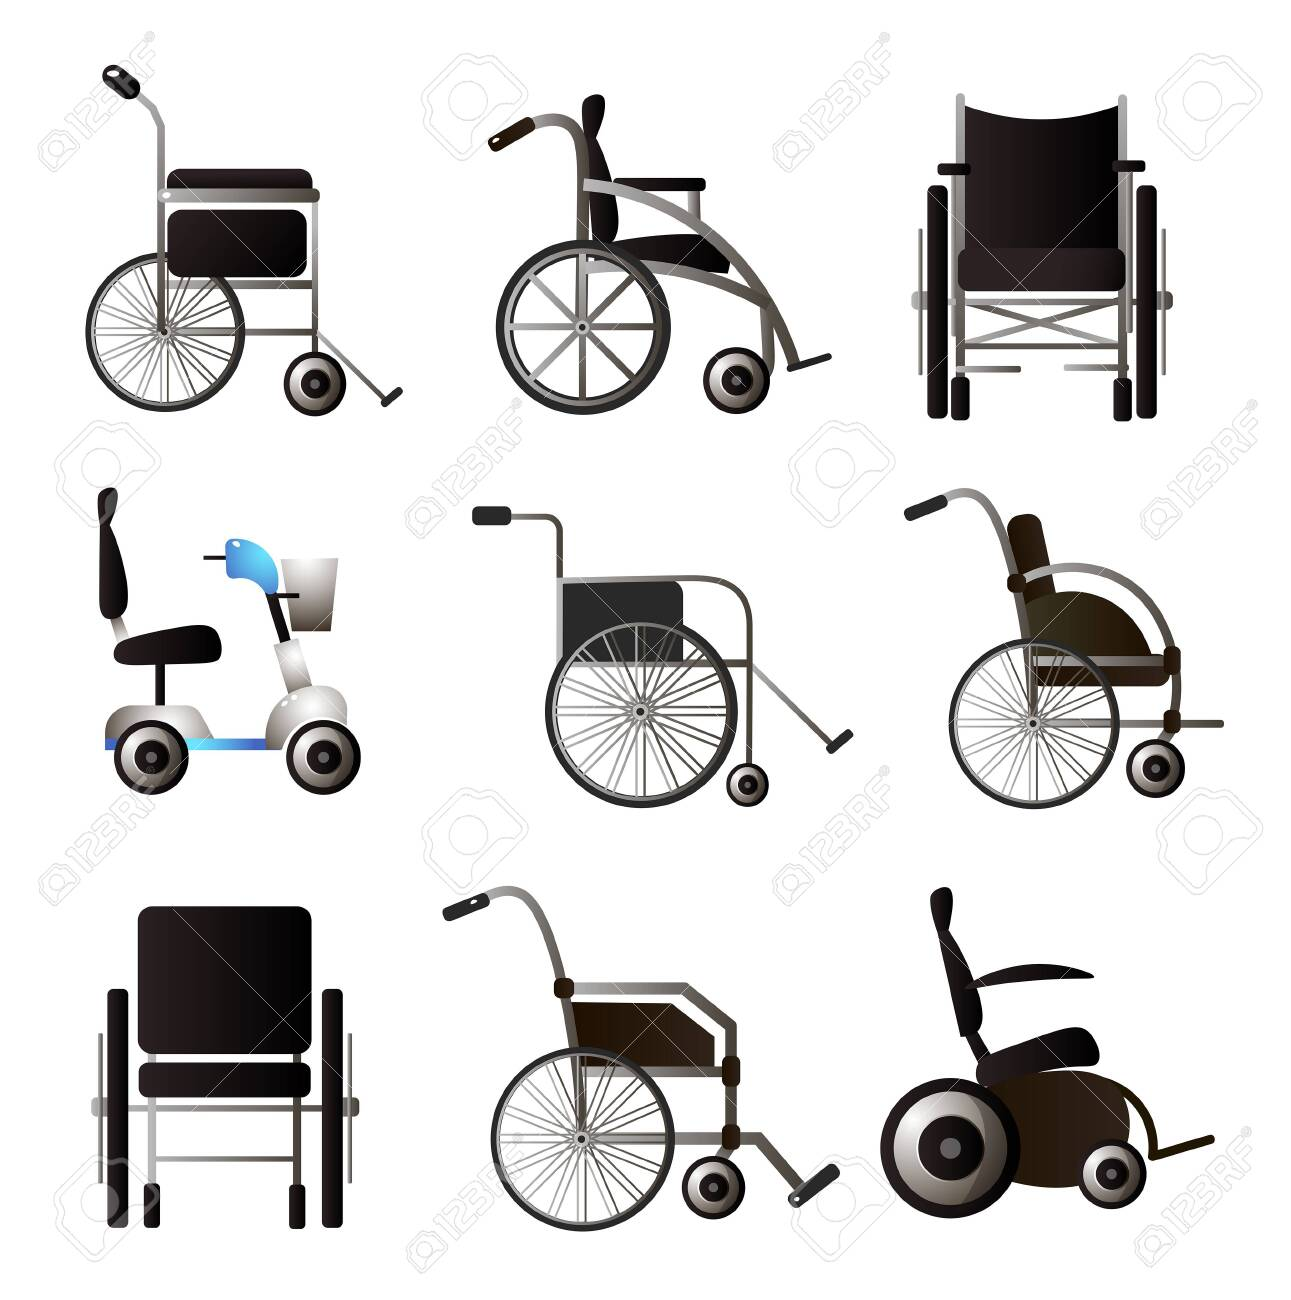 Set Of Modern Wheel Chair Different Type And Model For Home Or Royalty Free Cliparts Vectors And Stock Illustration Image 123511521